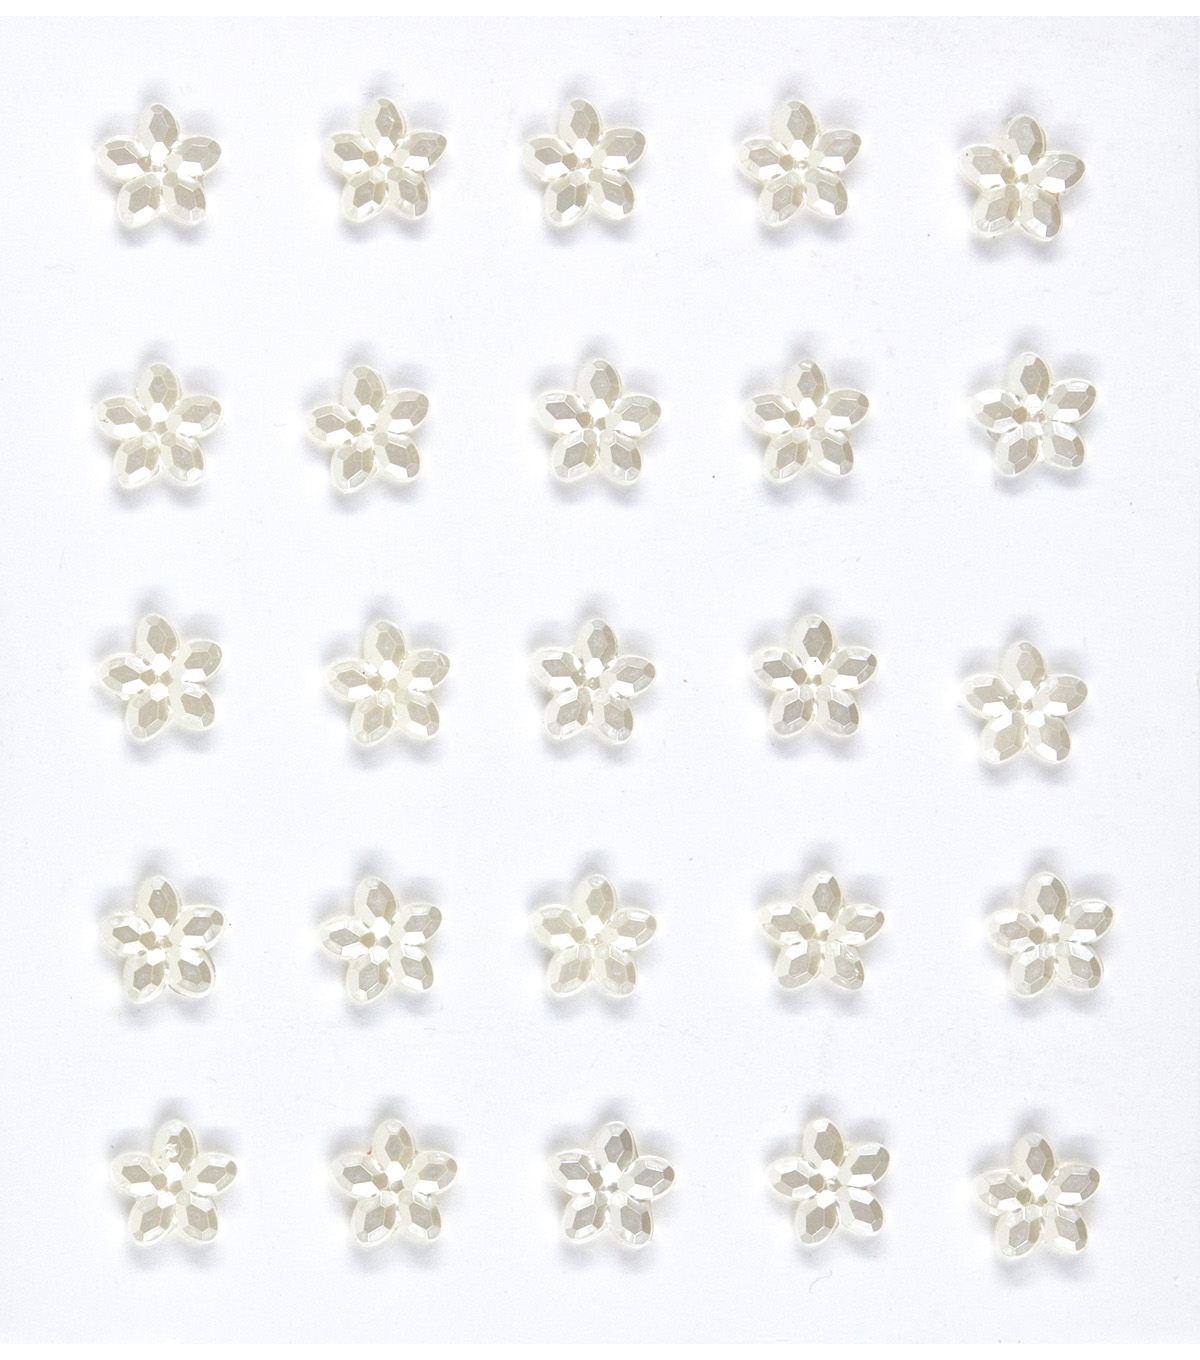 Jolee's Boutique® 25 Pack Mini Flower Gems Pearl Embellishments